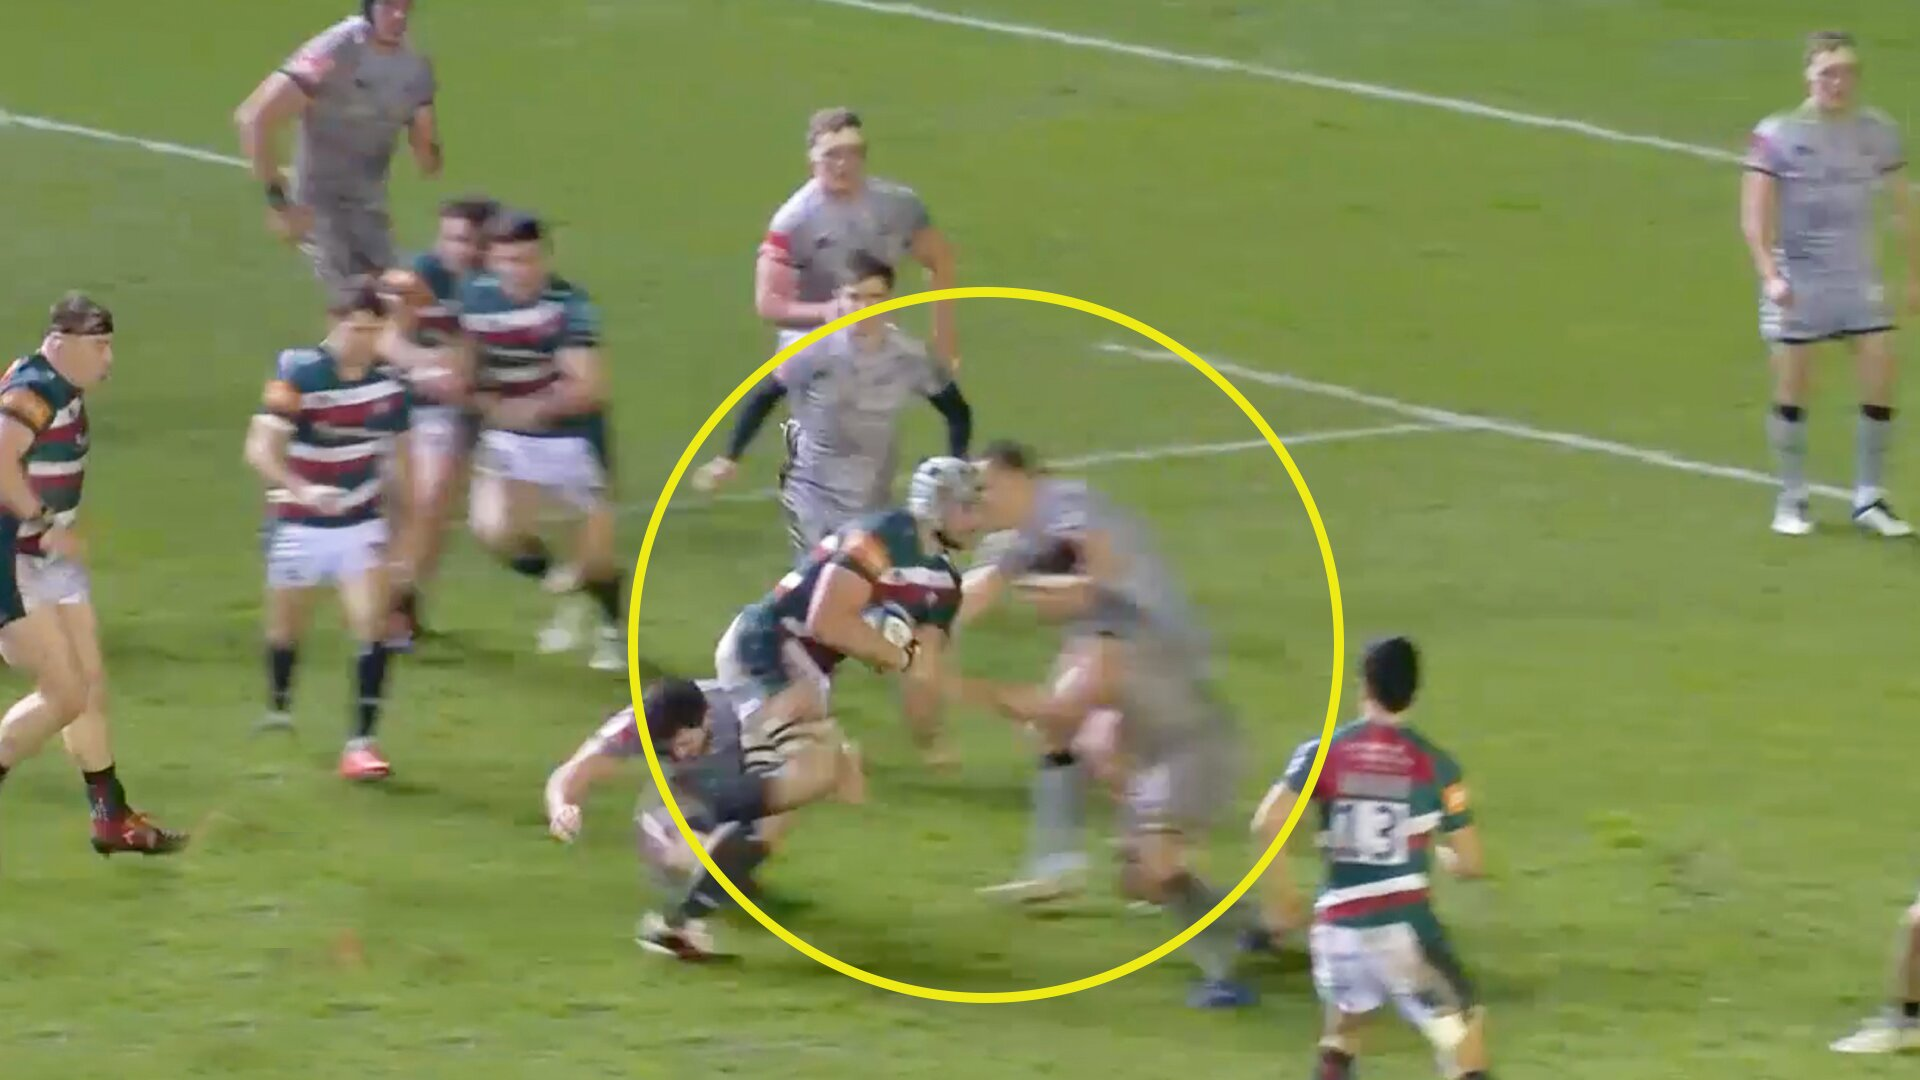 Snubbed Shark proves he's ready for England duty with game stopping hit